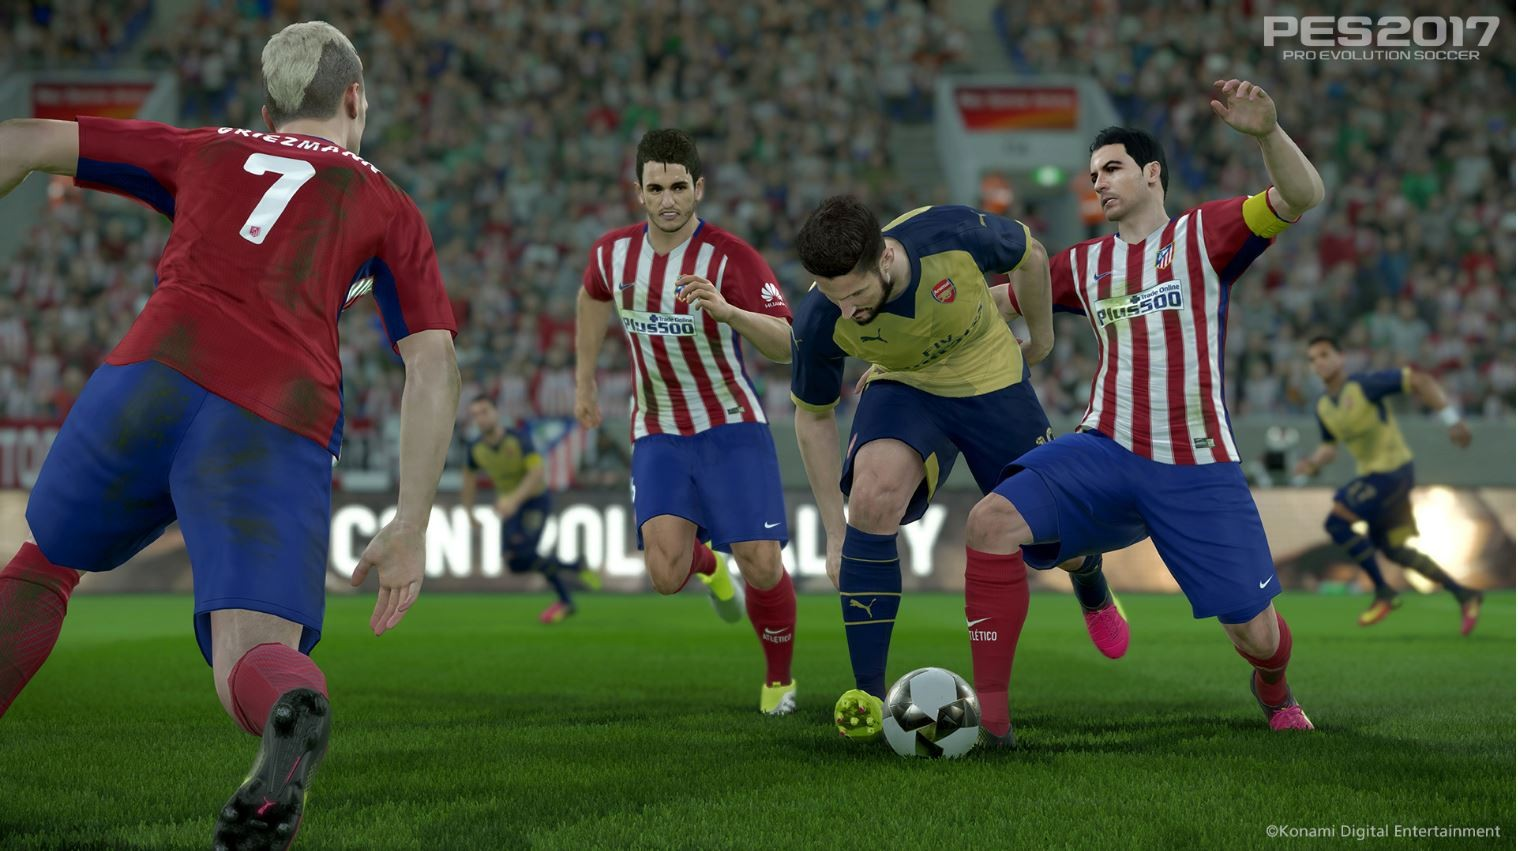 http://gameplaying.info/wp-content/uploads/2016/06/pes-2017-screen-8.jpg